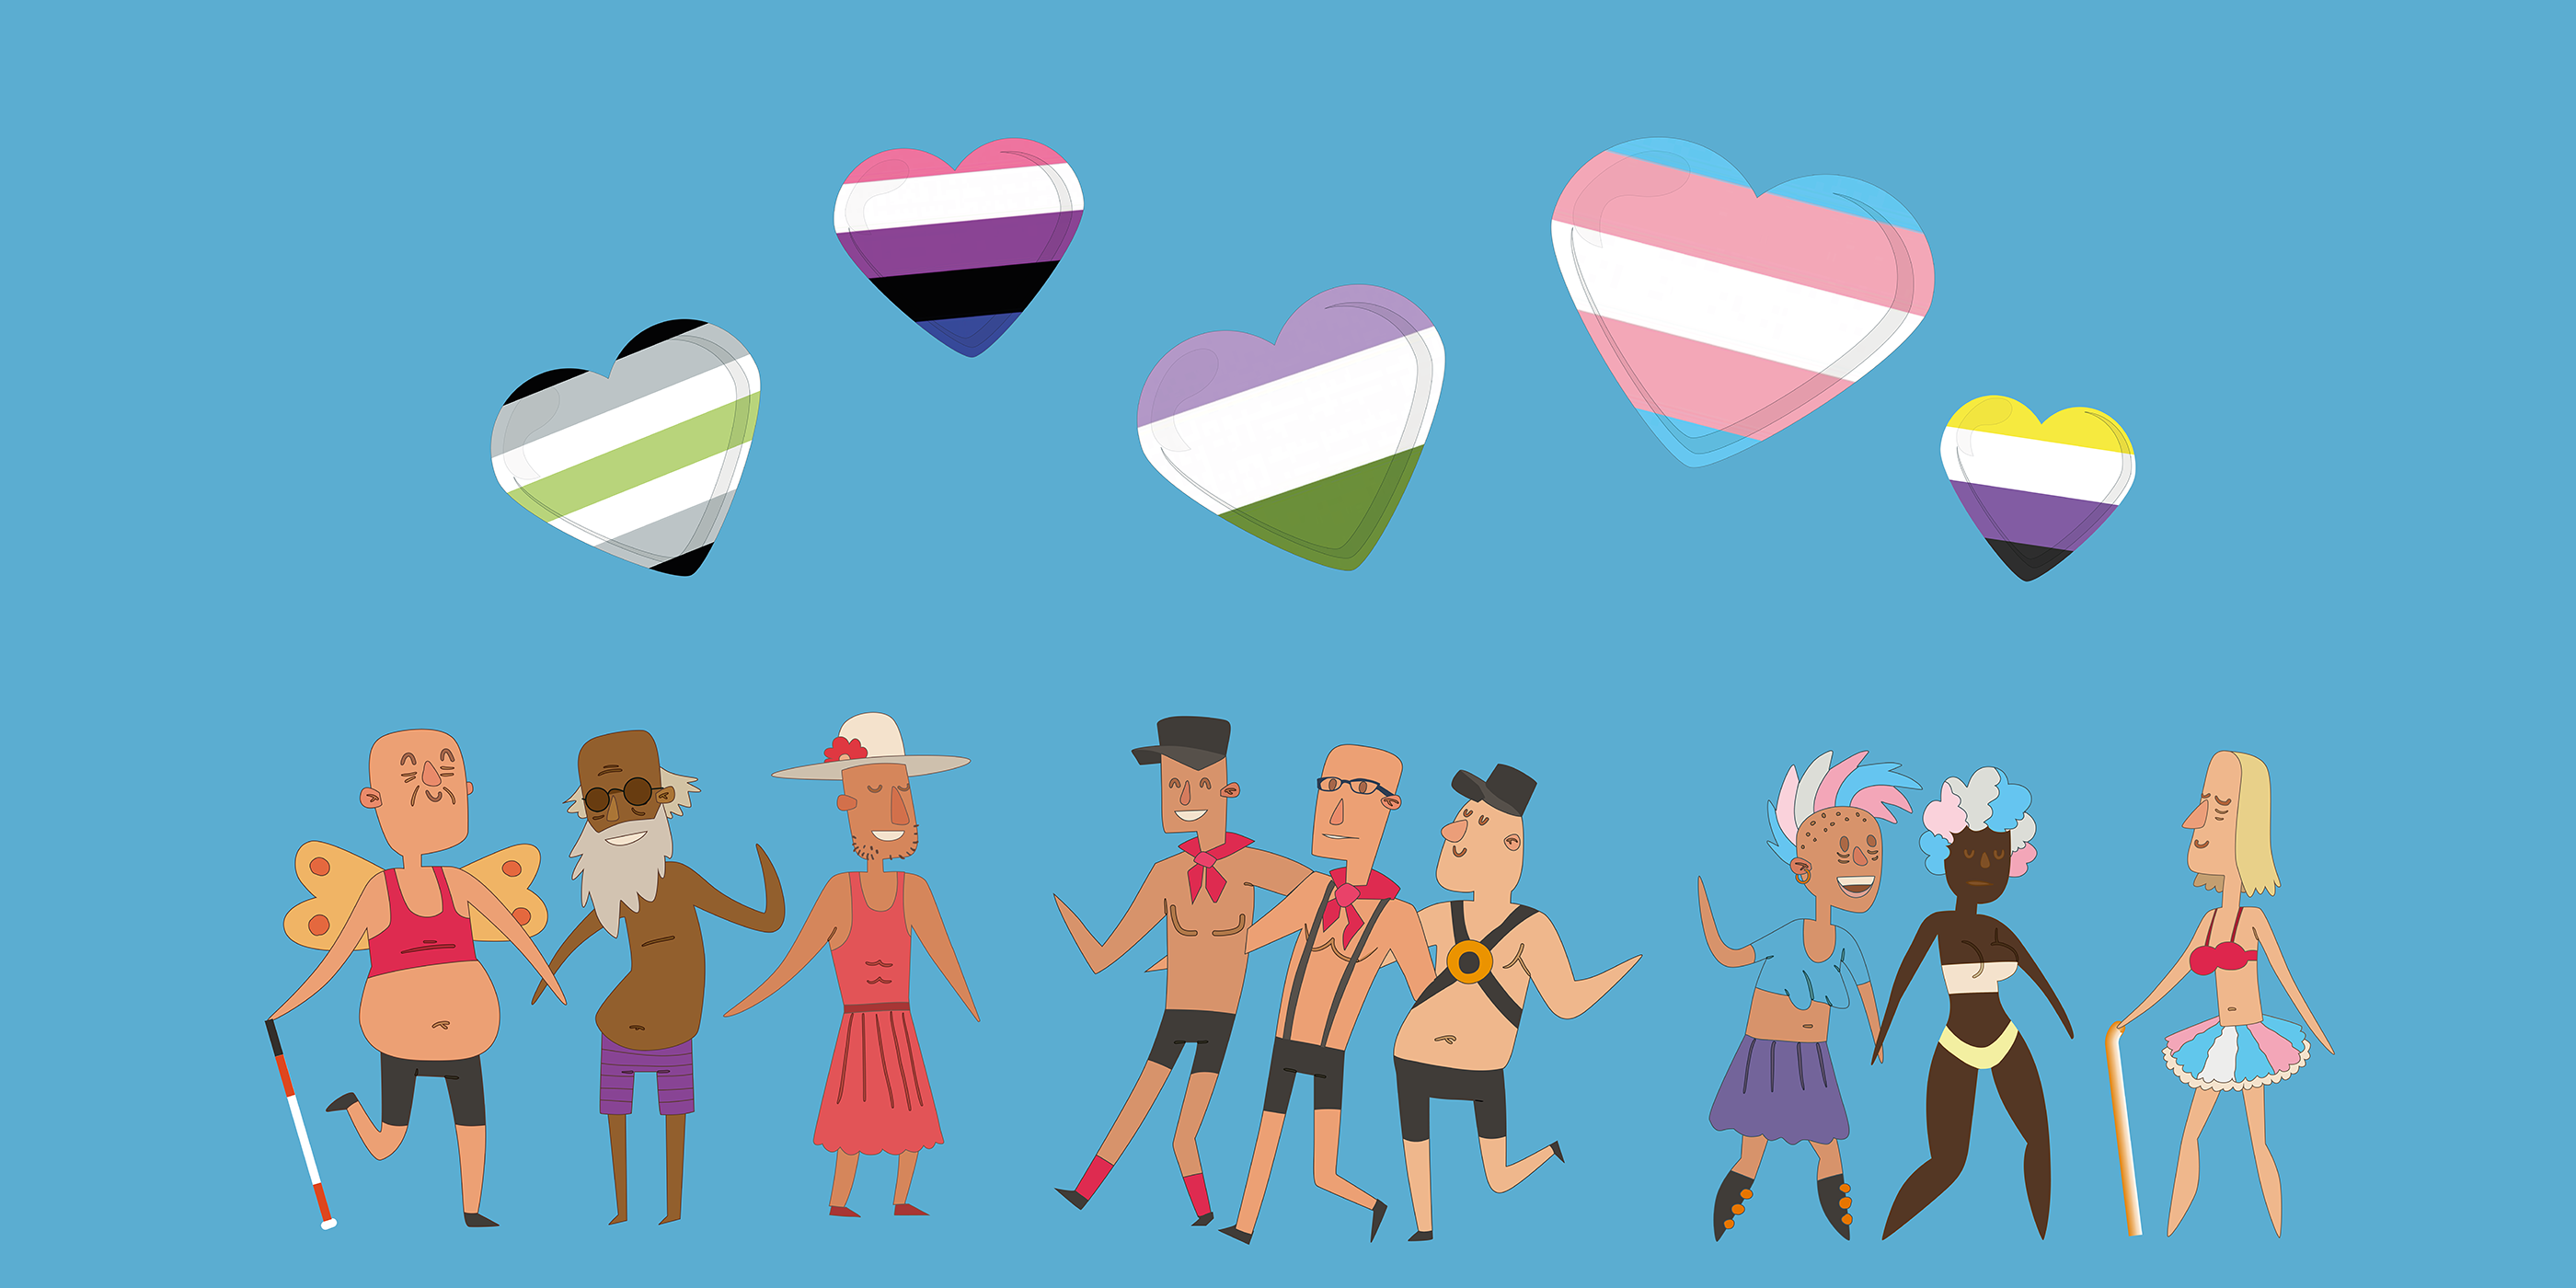 A group of nine trans and non-binary people with a range of gender presentations. The characters have various skin tones. Some are wearing glasses and one is holding a long cane. Some are smiling and others have a more neutral facial expression. There are five heart shapes above the people. The hearts have the colours of the a gender, gender fluid, non-binary, transgender and genderqueer flags.